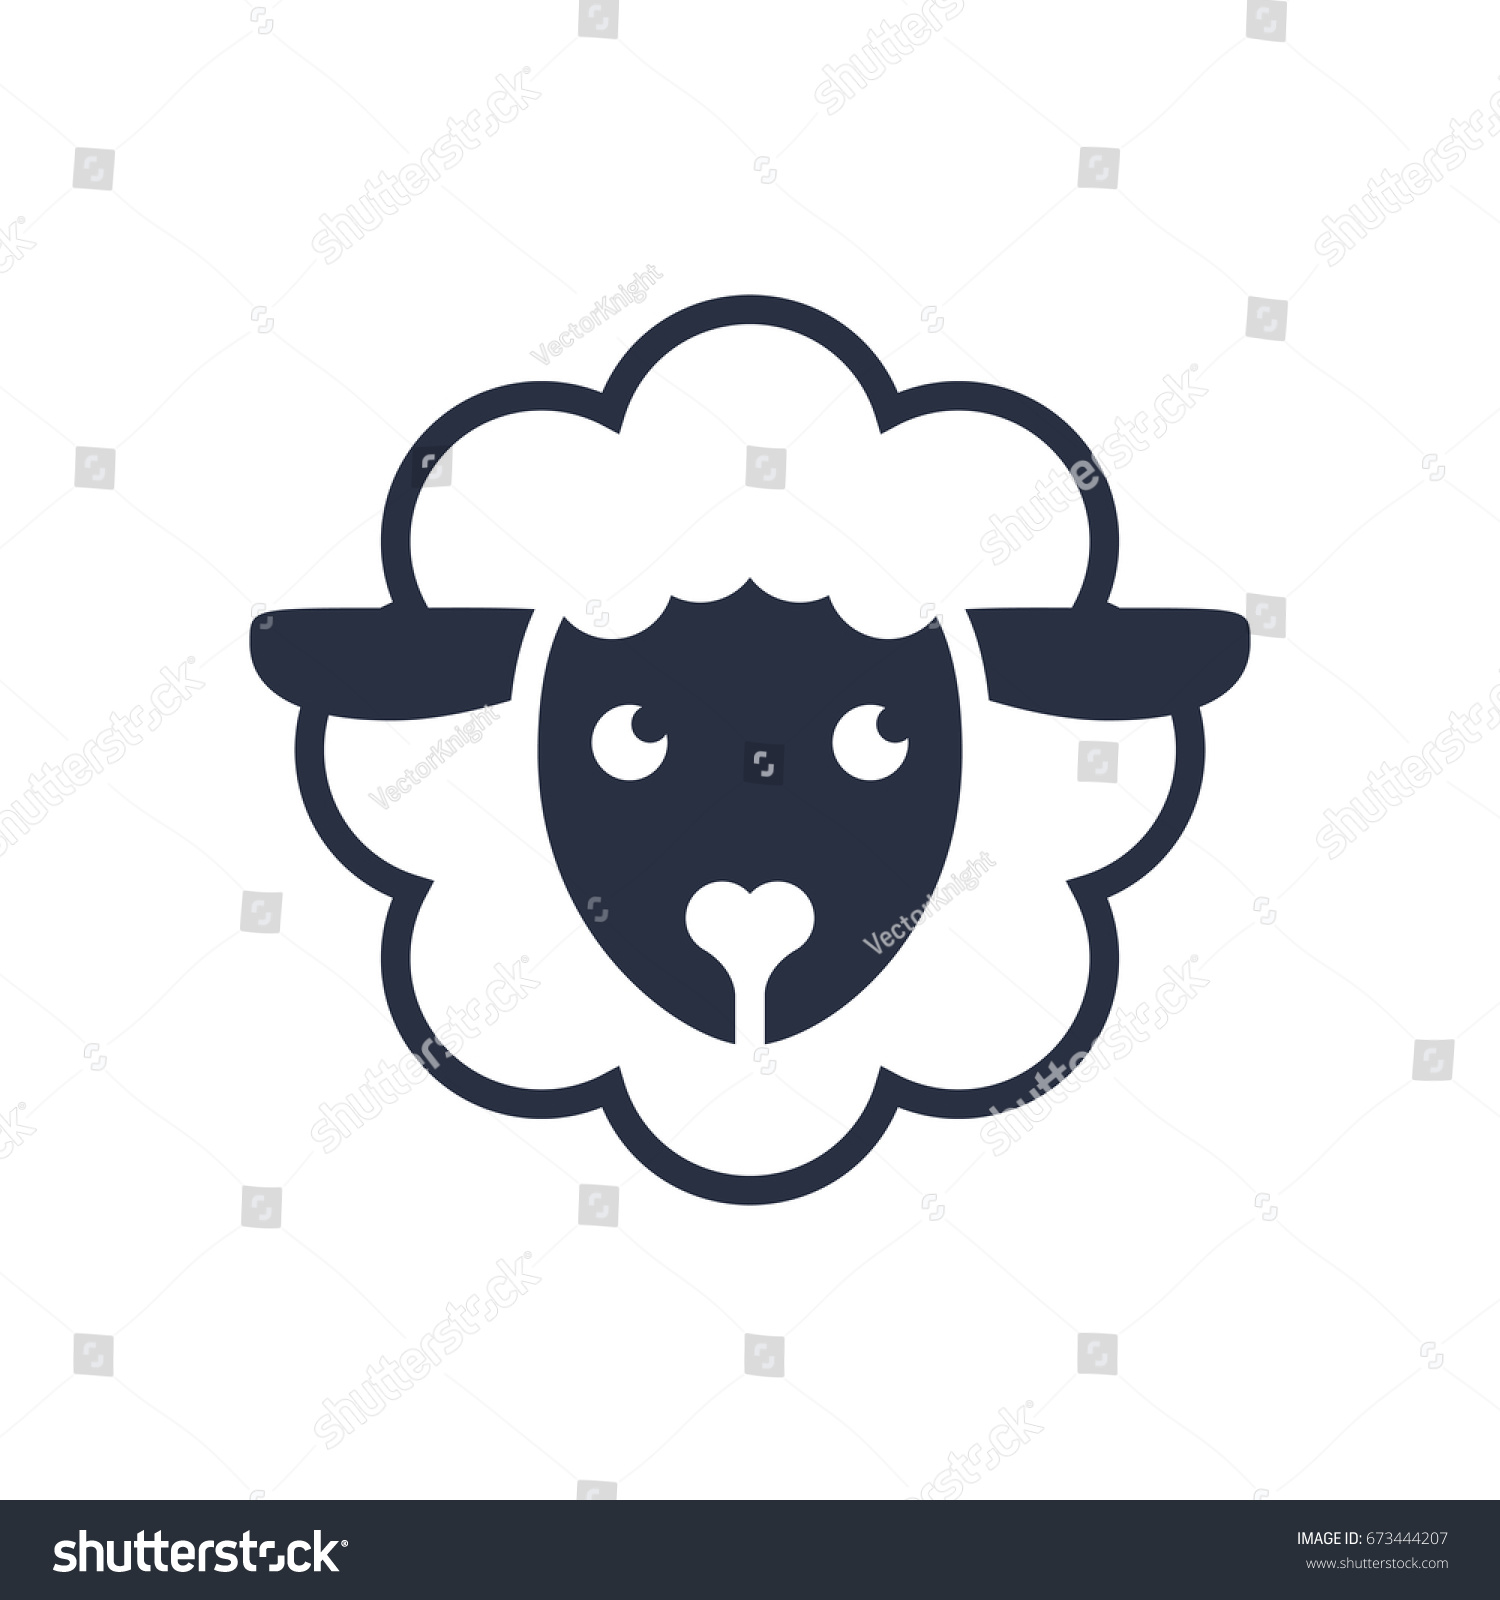 Sheep Logo Logo Template Sheep Head Stock Illustration 673444207 ...